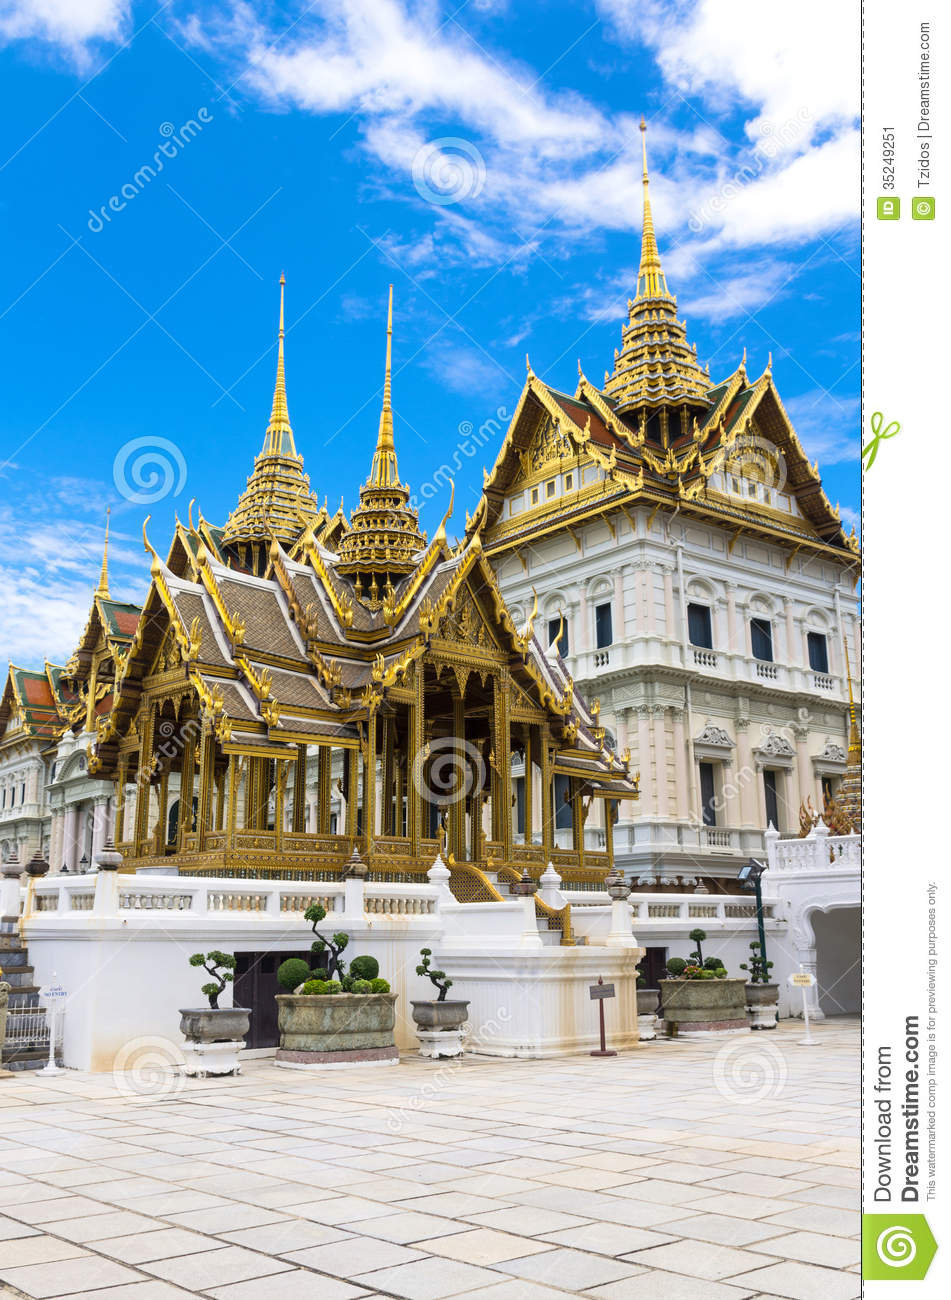 Wat phra kaew or the temple of thailand in bangkok stock for Wat architecture